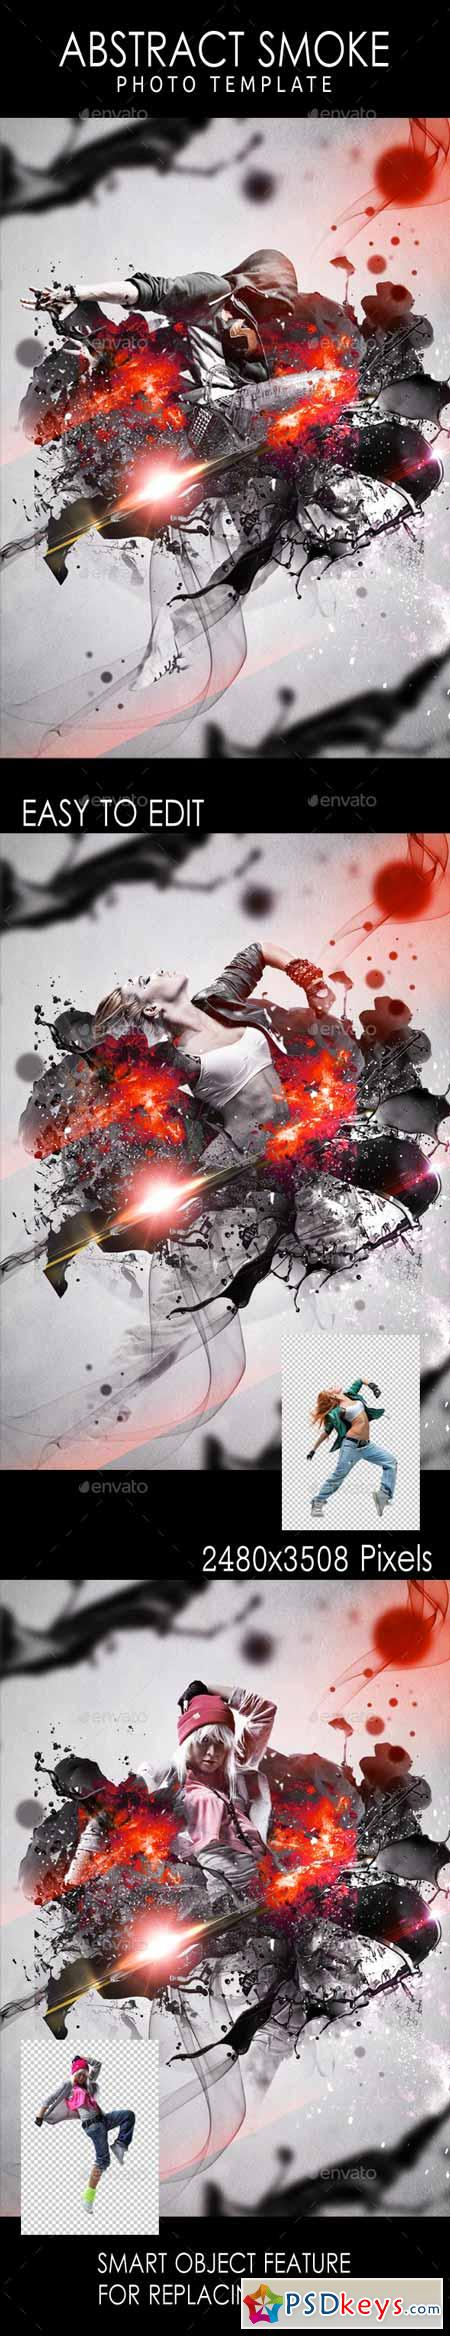 Abstract Smoke Photo Template 11255305